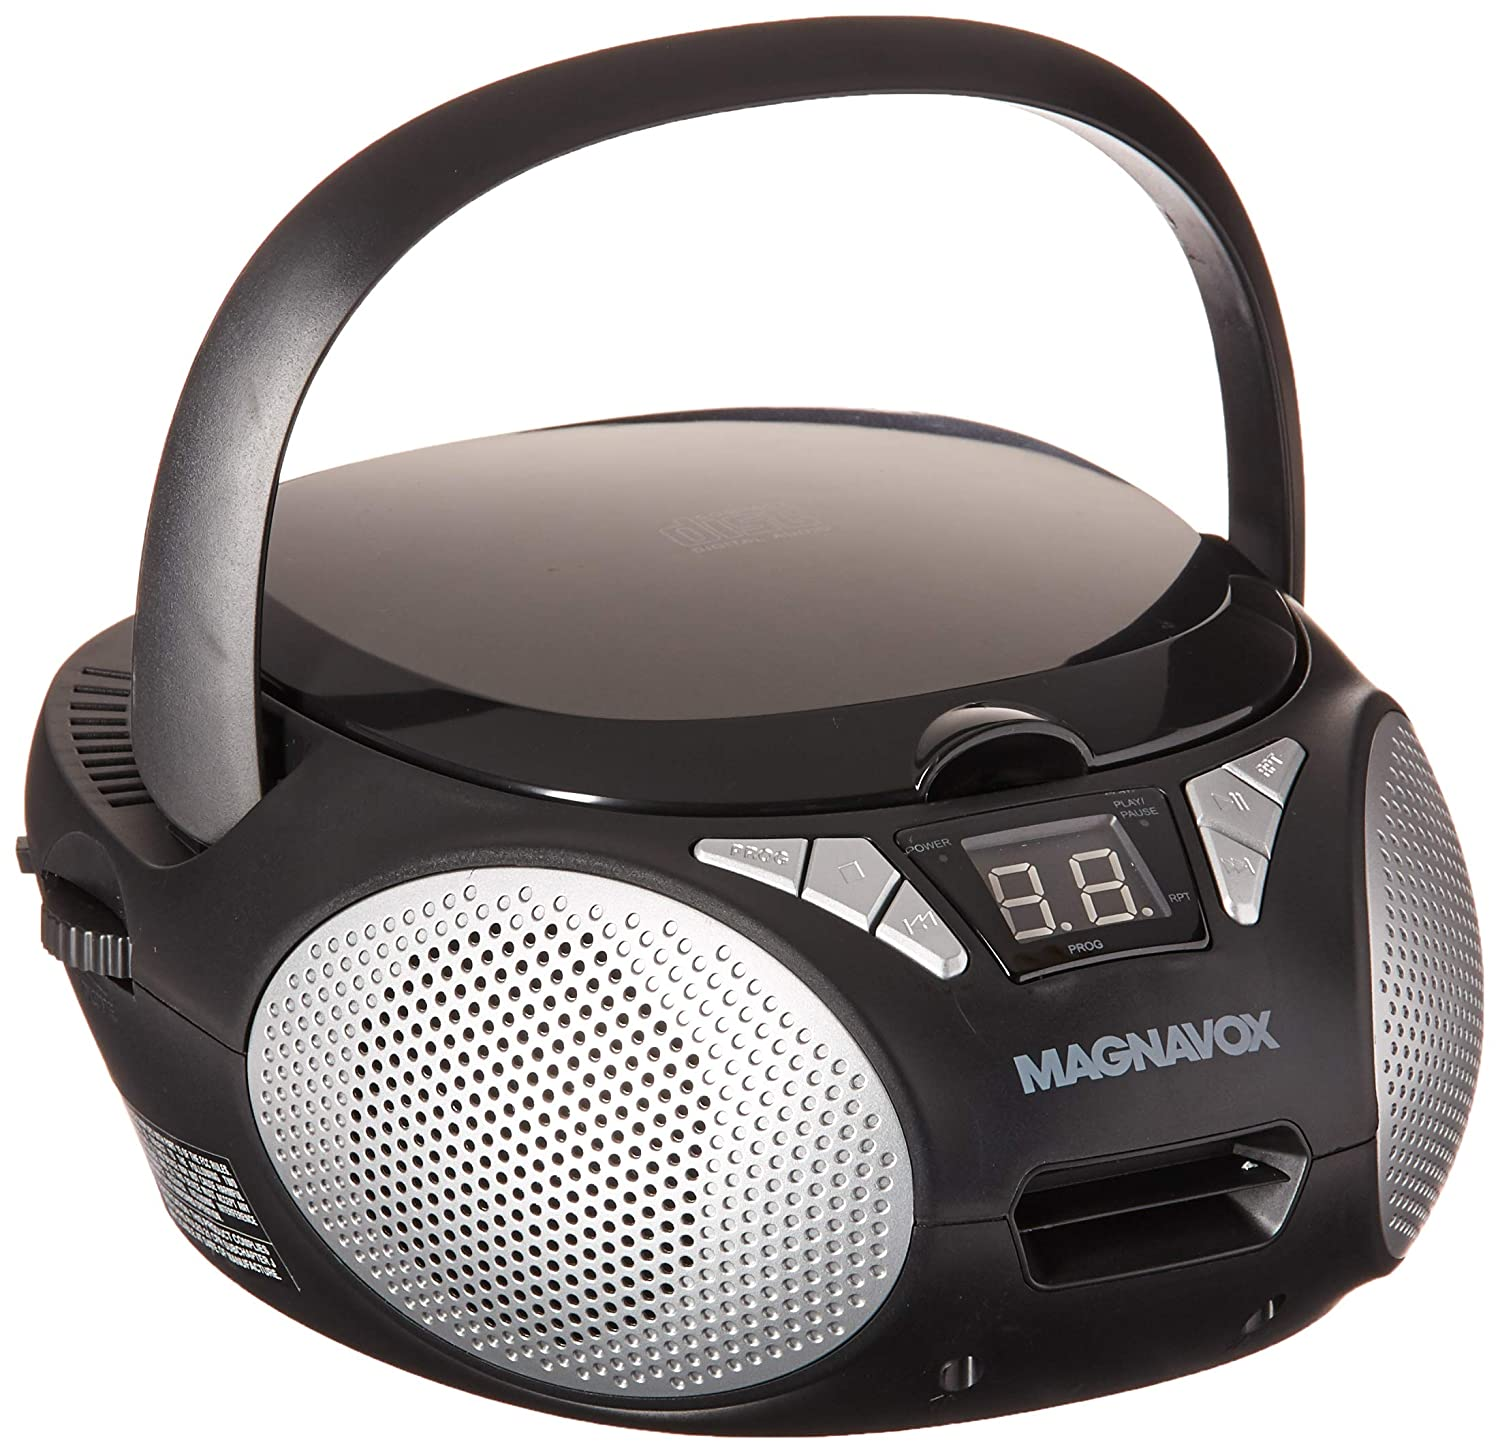 Magnavox MD6924 New CD Boombox - Black Craig Electronics